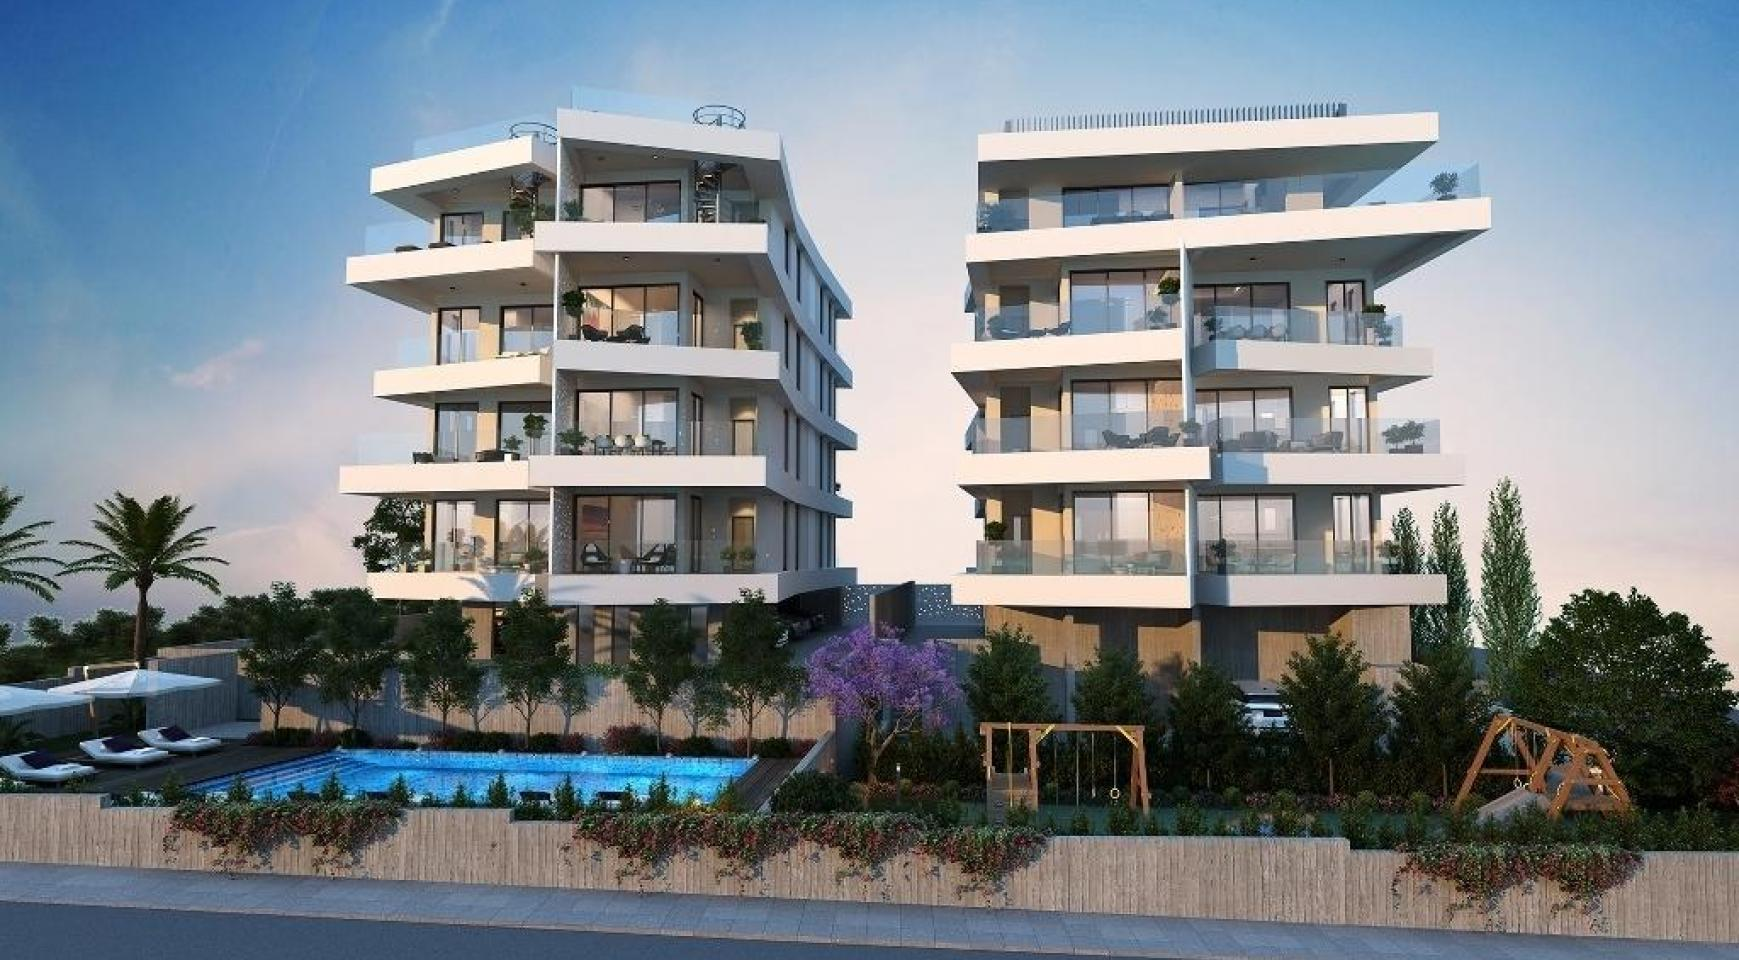 New 2 Bedroom Penthouse in a Contemporary Complex in Germasogeia - 4